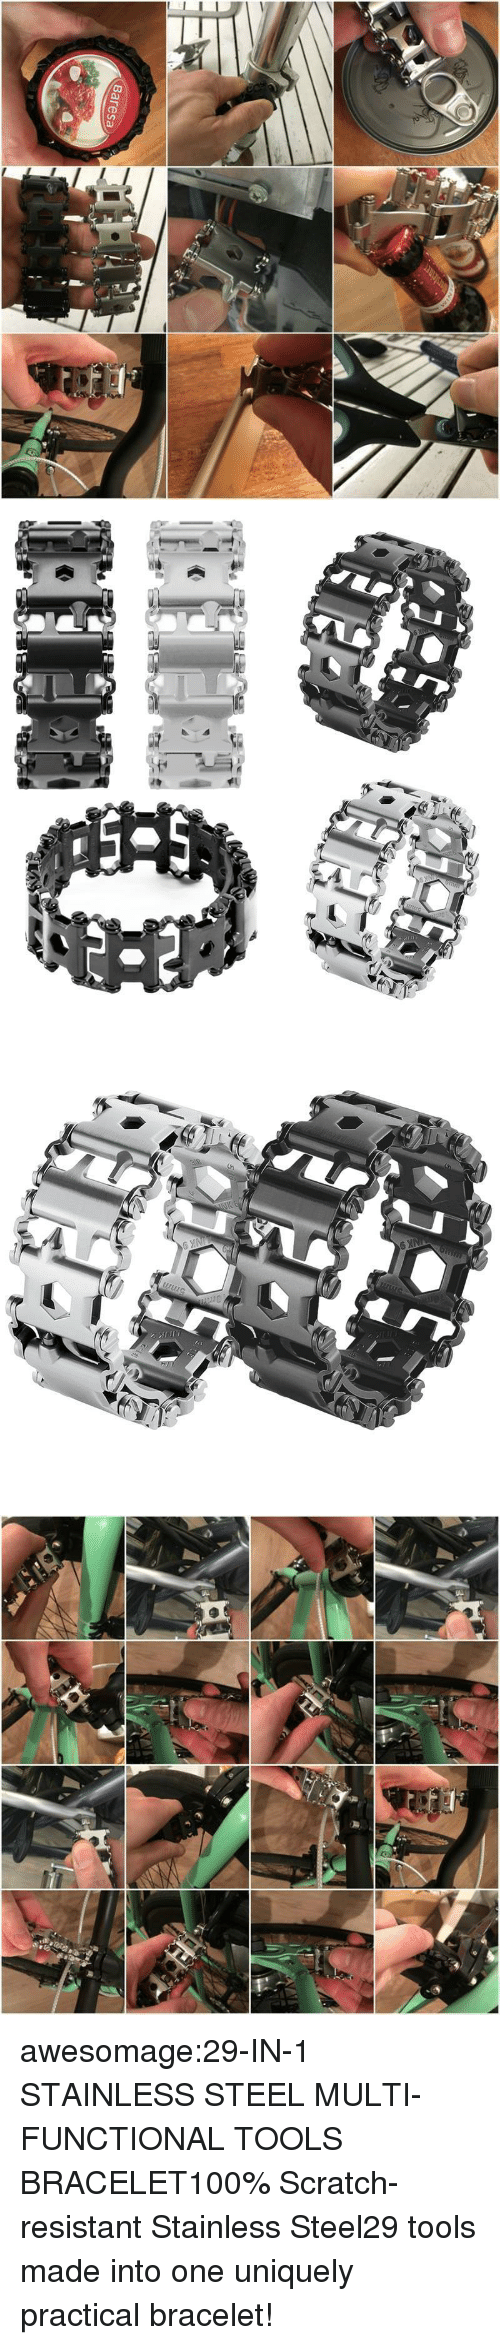 Anaconda, Tumblr, and Blog: Baresa awesomage:29-IN-1 STAINLESS STEEL MULTI-FUNCTIONAL TOOLS BRACELET100% Scratch-resistant Stainless Steel29 tools made into one uniquely practical bracelet!